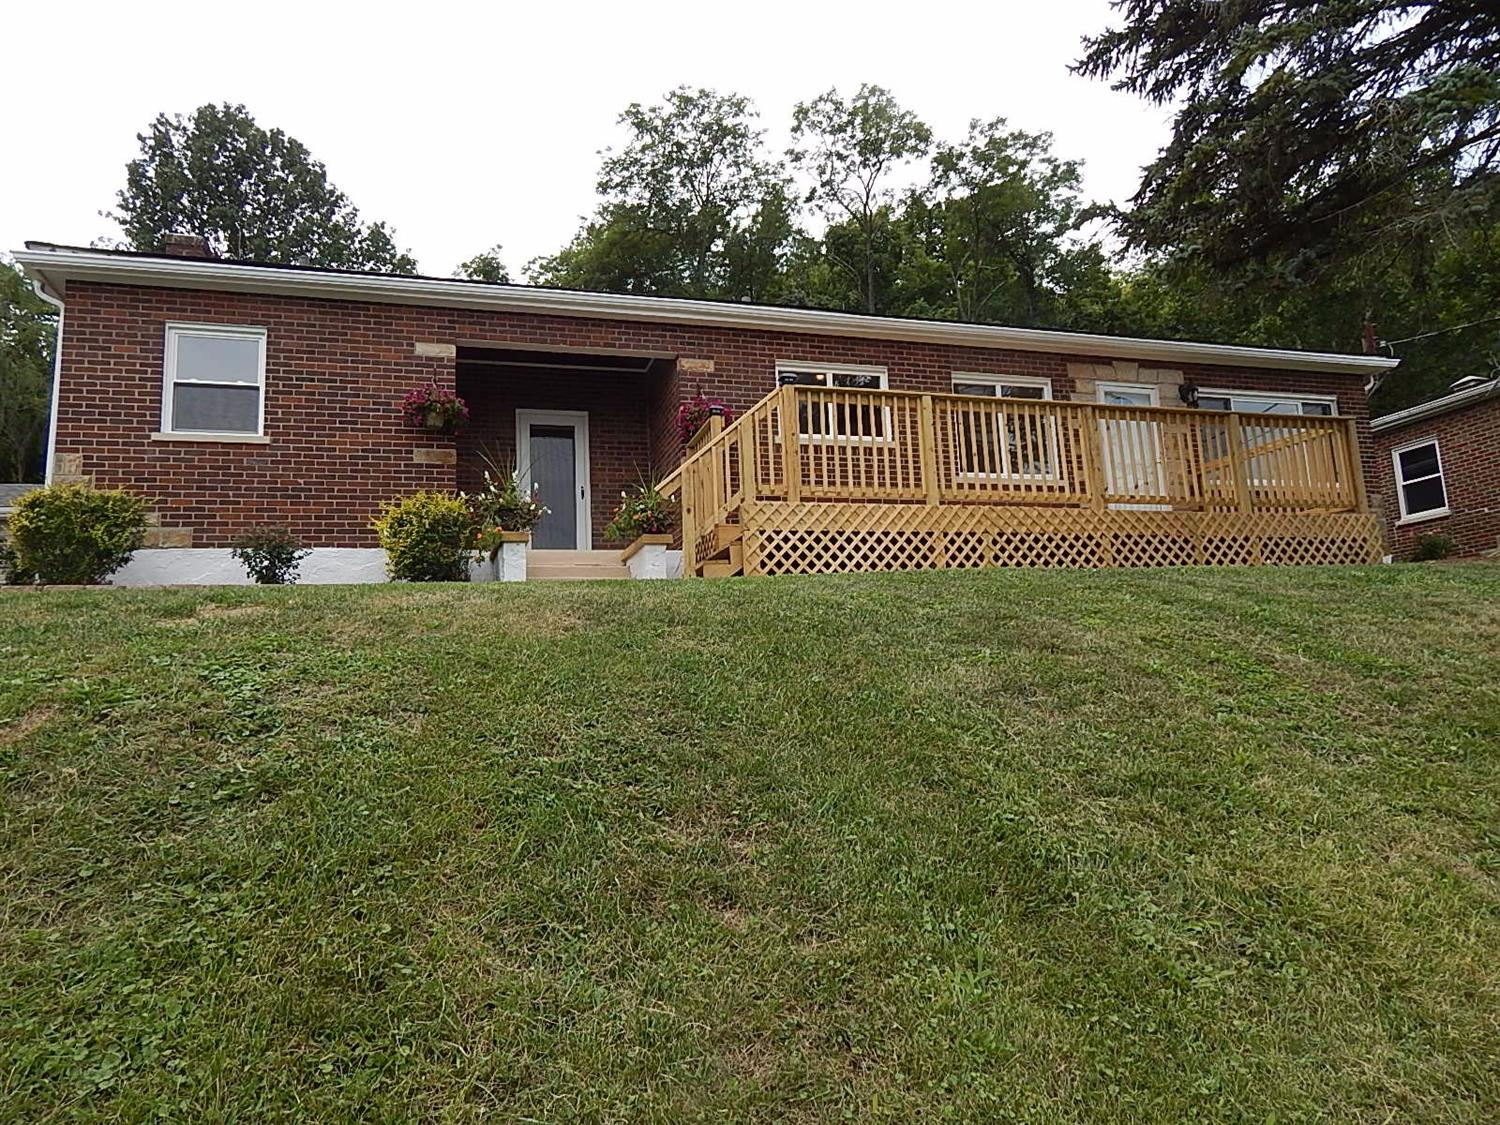 Photo 1 for 715 Parkview Dr Taylor Mill, KY 41015